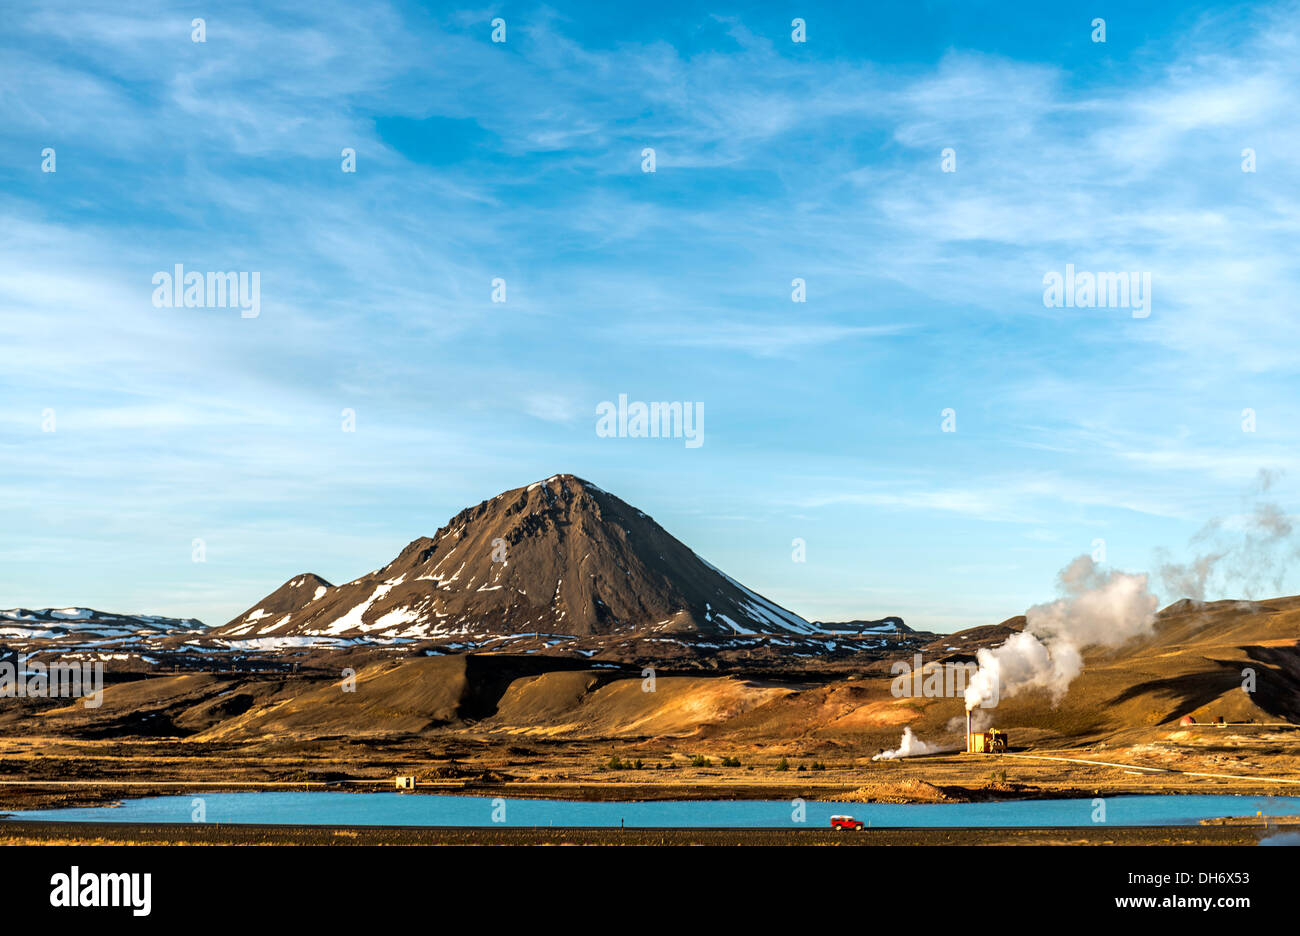 Mudpot or mud pool North Iceland Europe - Stock Image